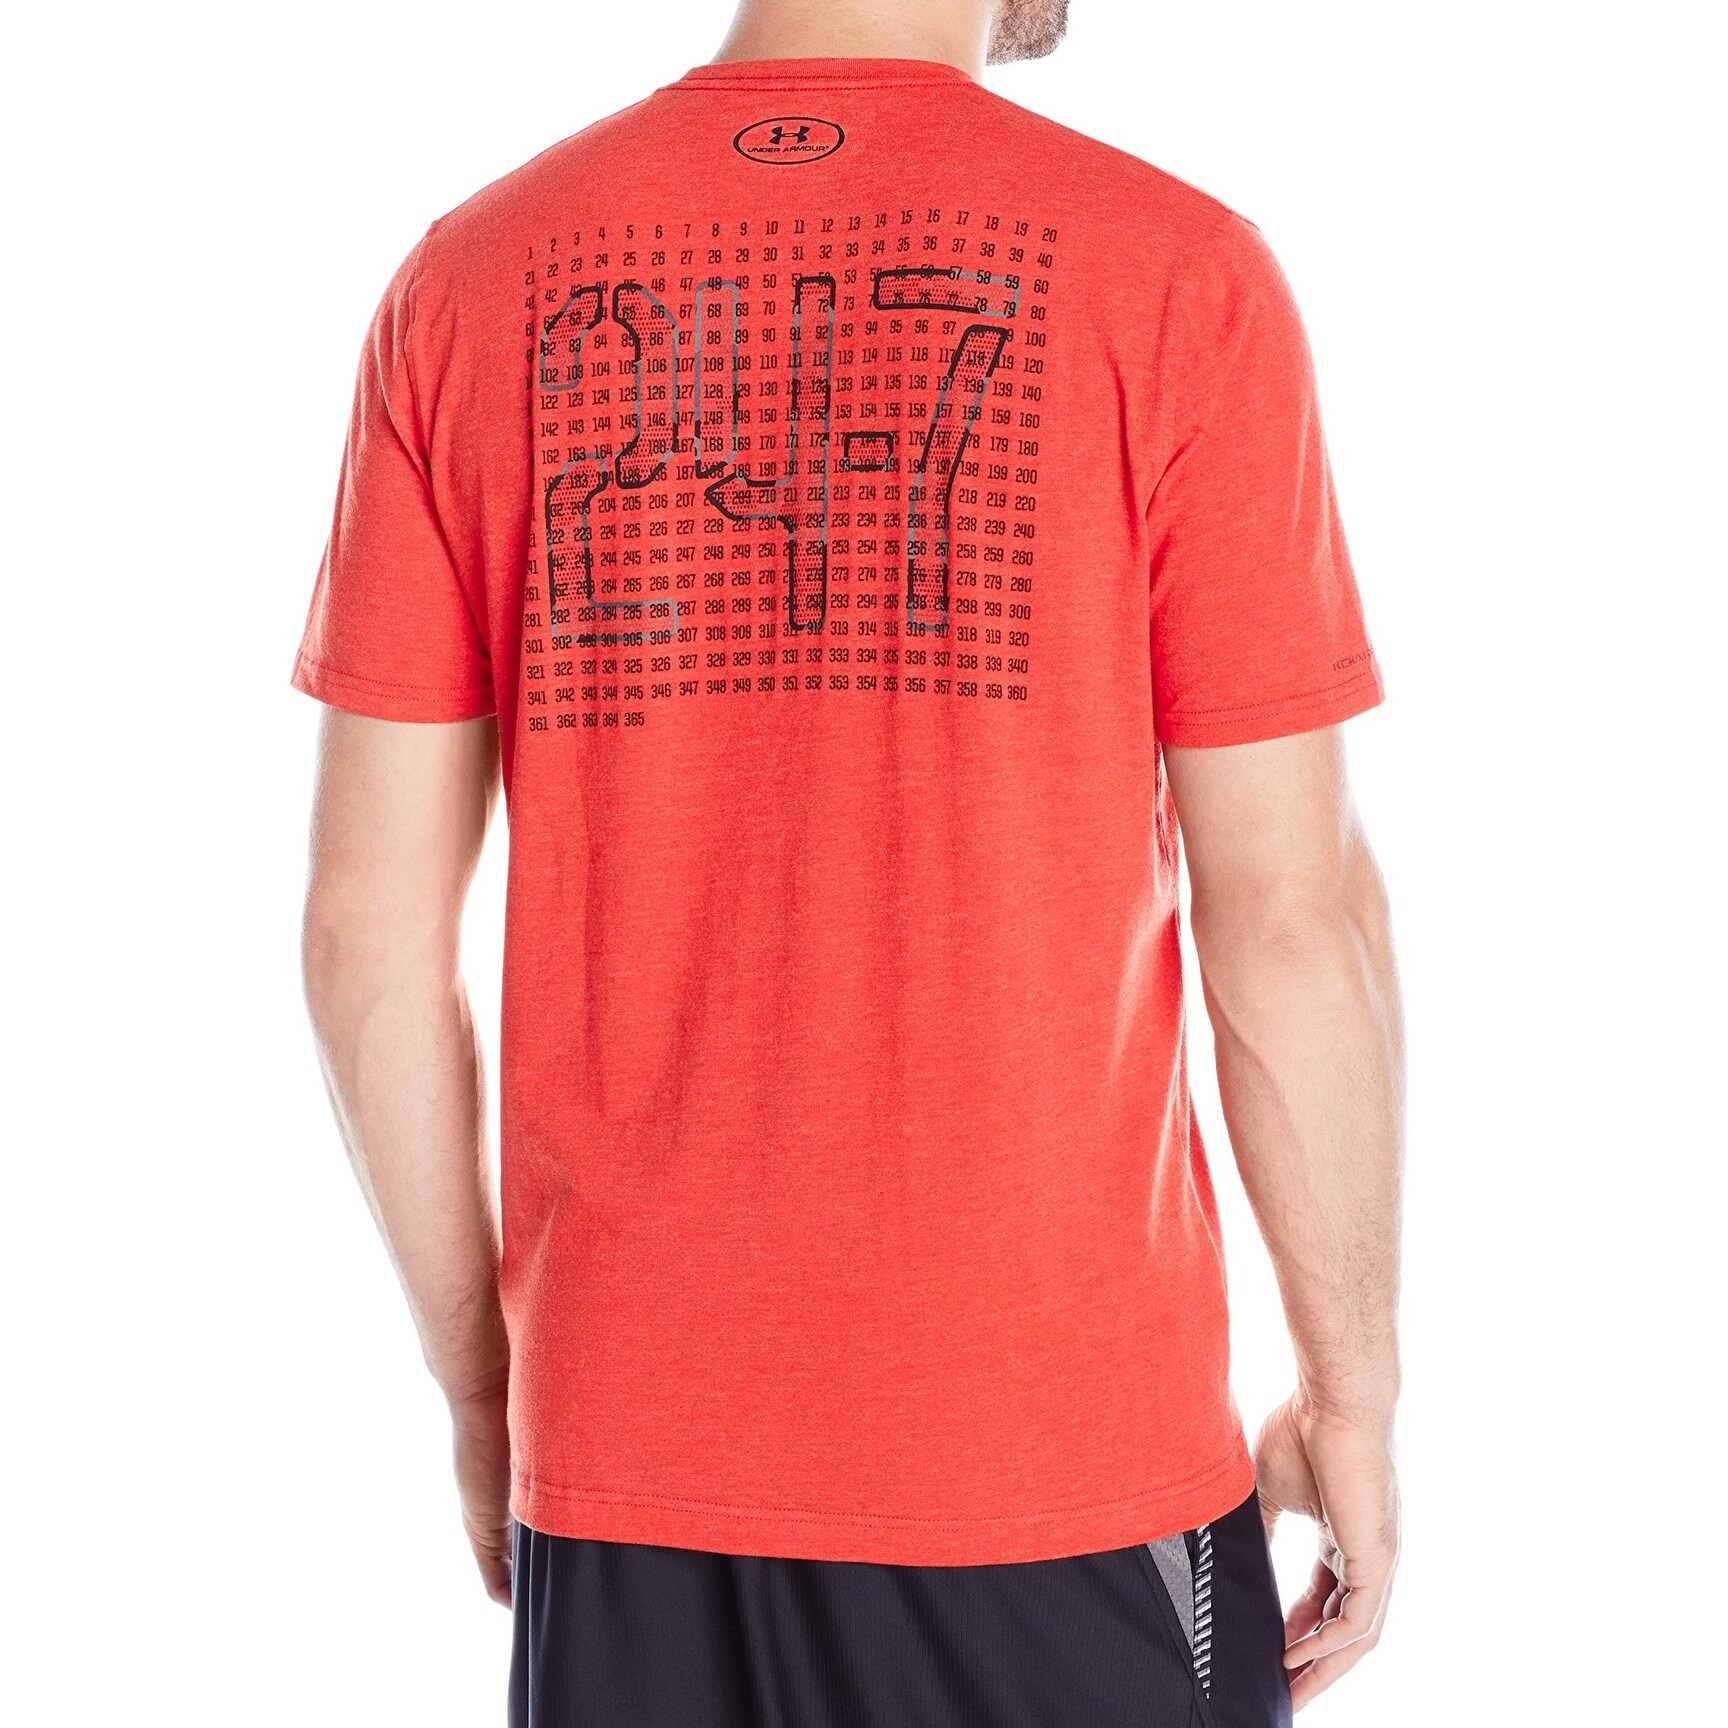 Shop Under Armour New Red Mens Small S Everyday Matters Graphic